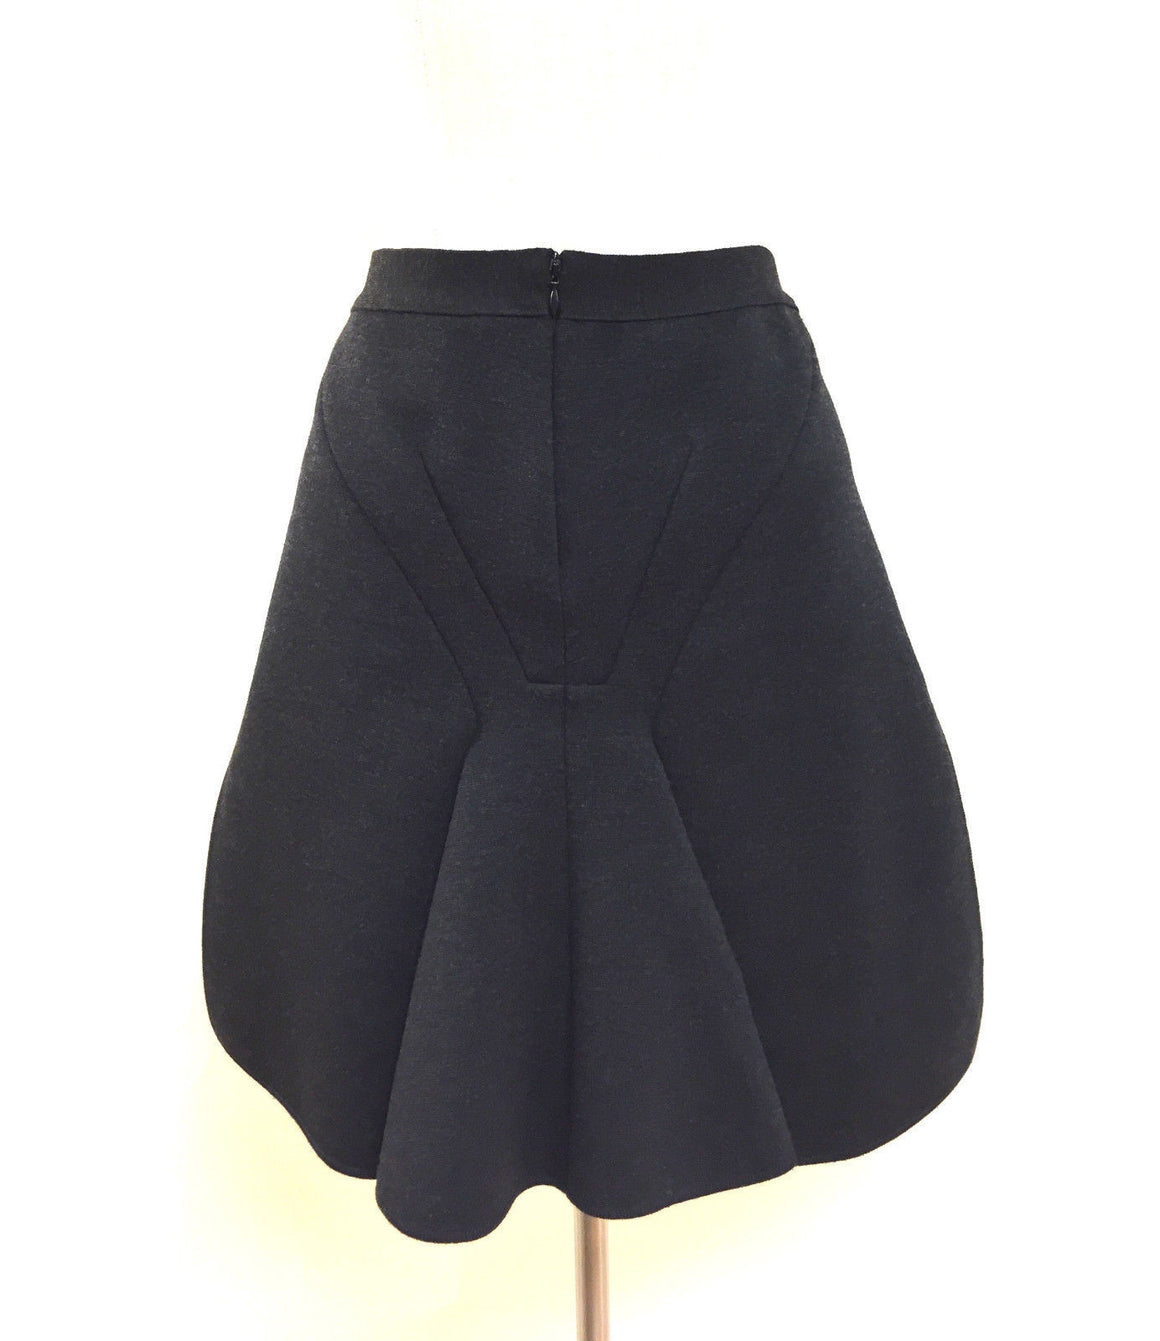 bisbiz.com GIVENCHY   Charcoal-Gray Wool-Blend Mermaid-Back Above the Knee Knit Skirt  Size: M - Bis Luxury Resale